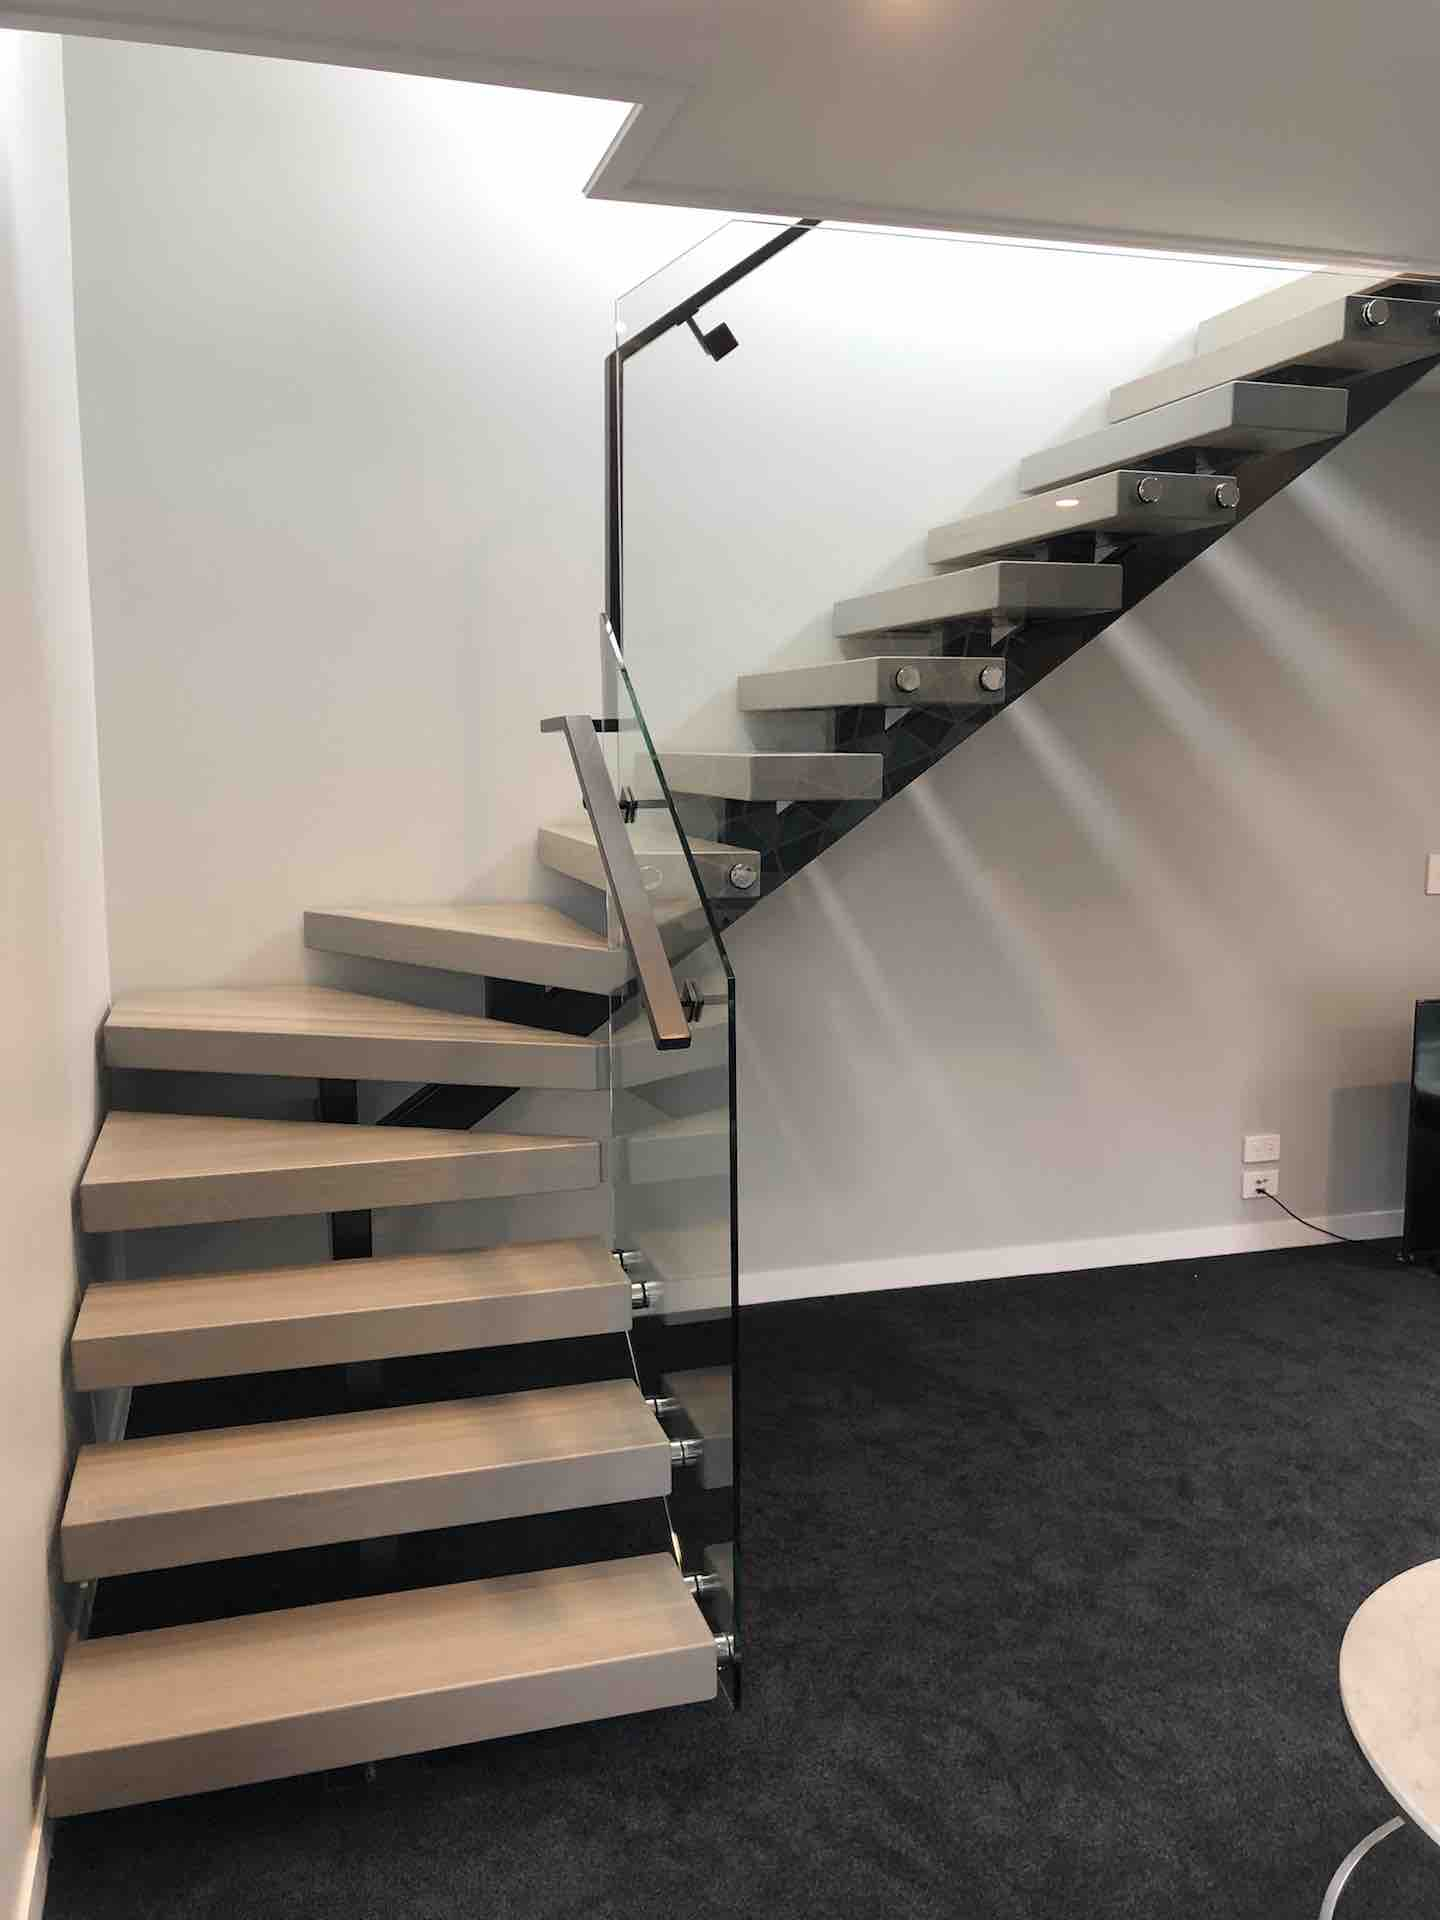 Floating stairs allow light in to show home in Auckland